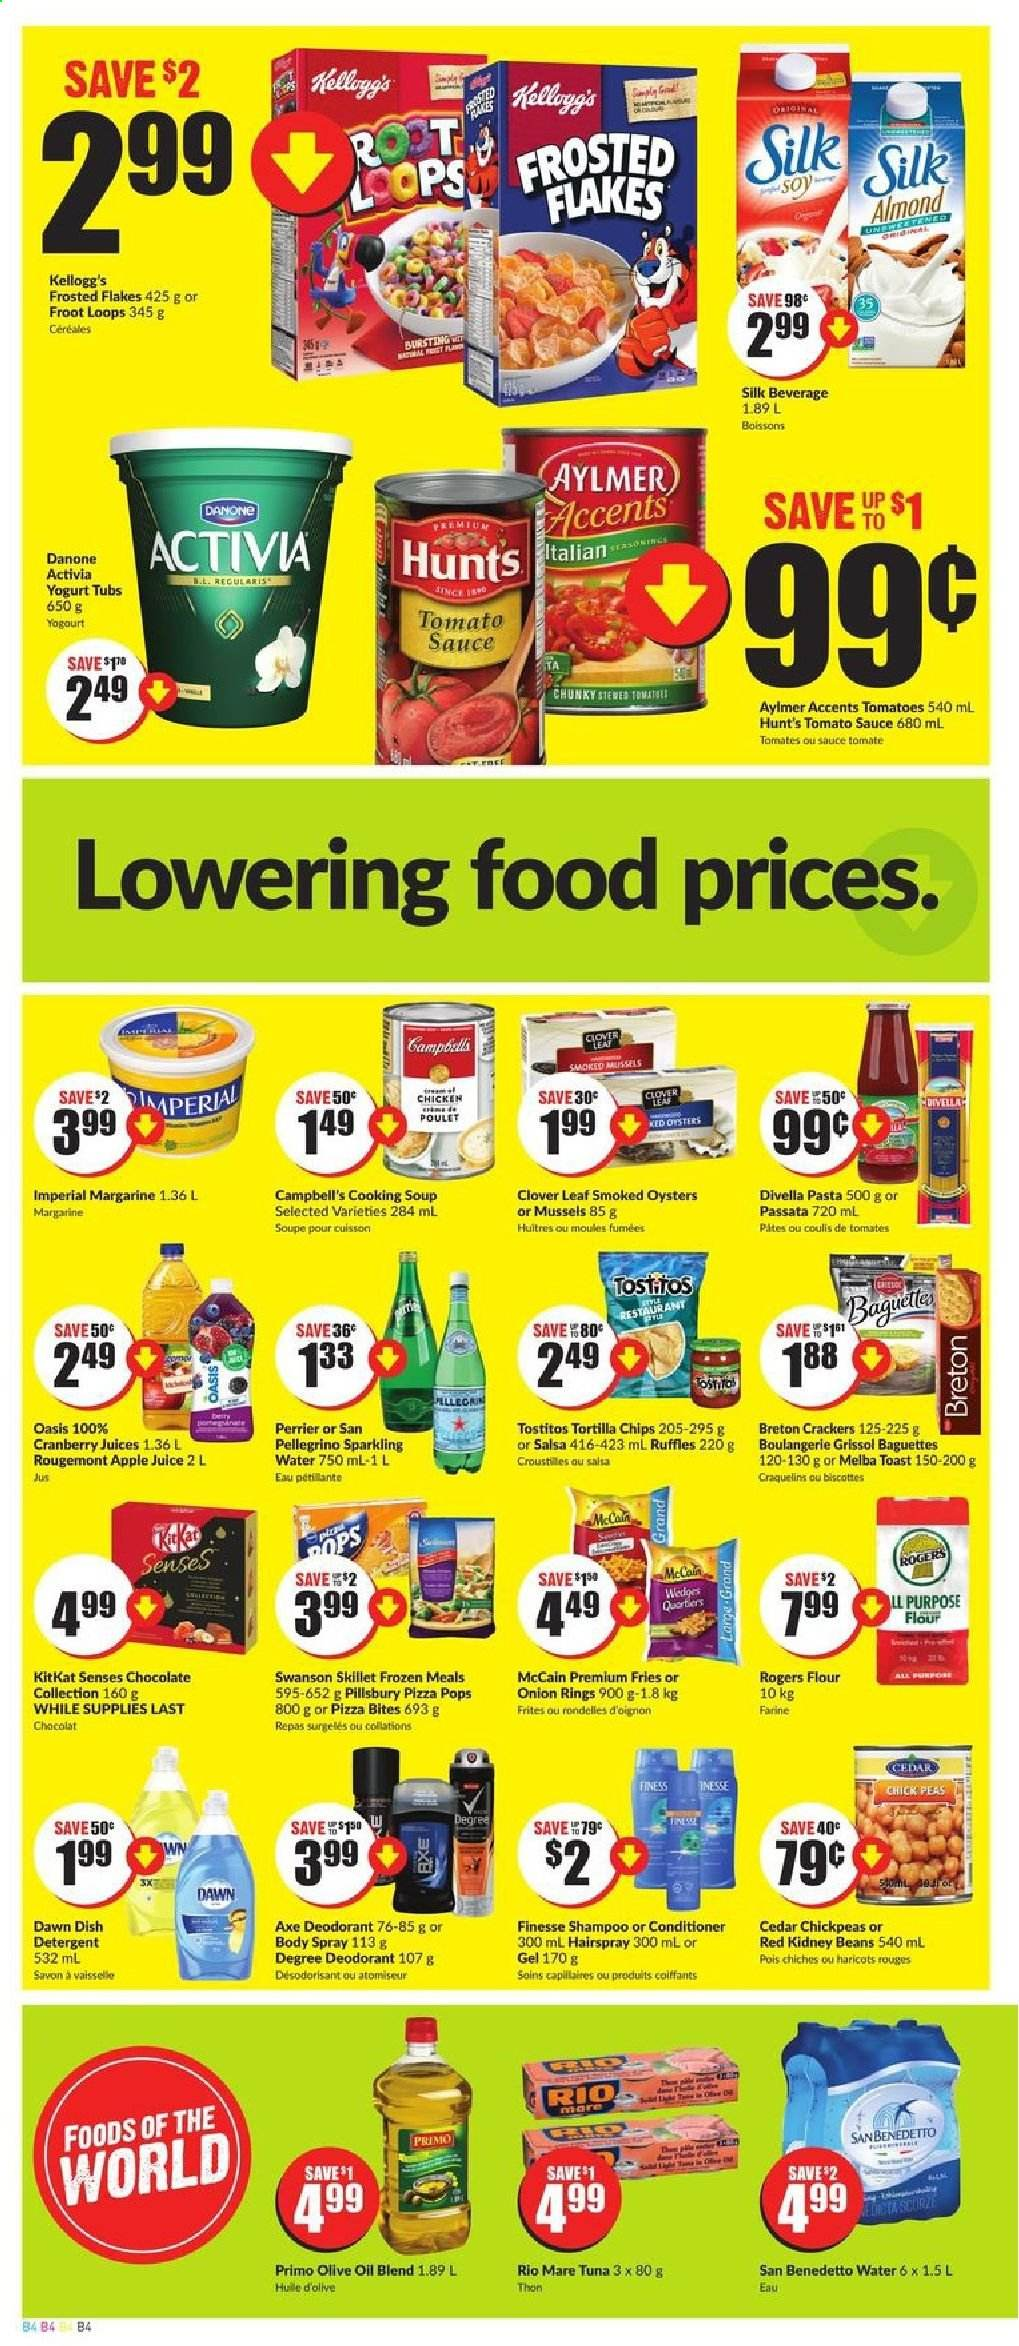 FreshCo. Flyer  - October 10, 2019 - October 16, 2019. Page 4.